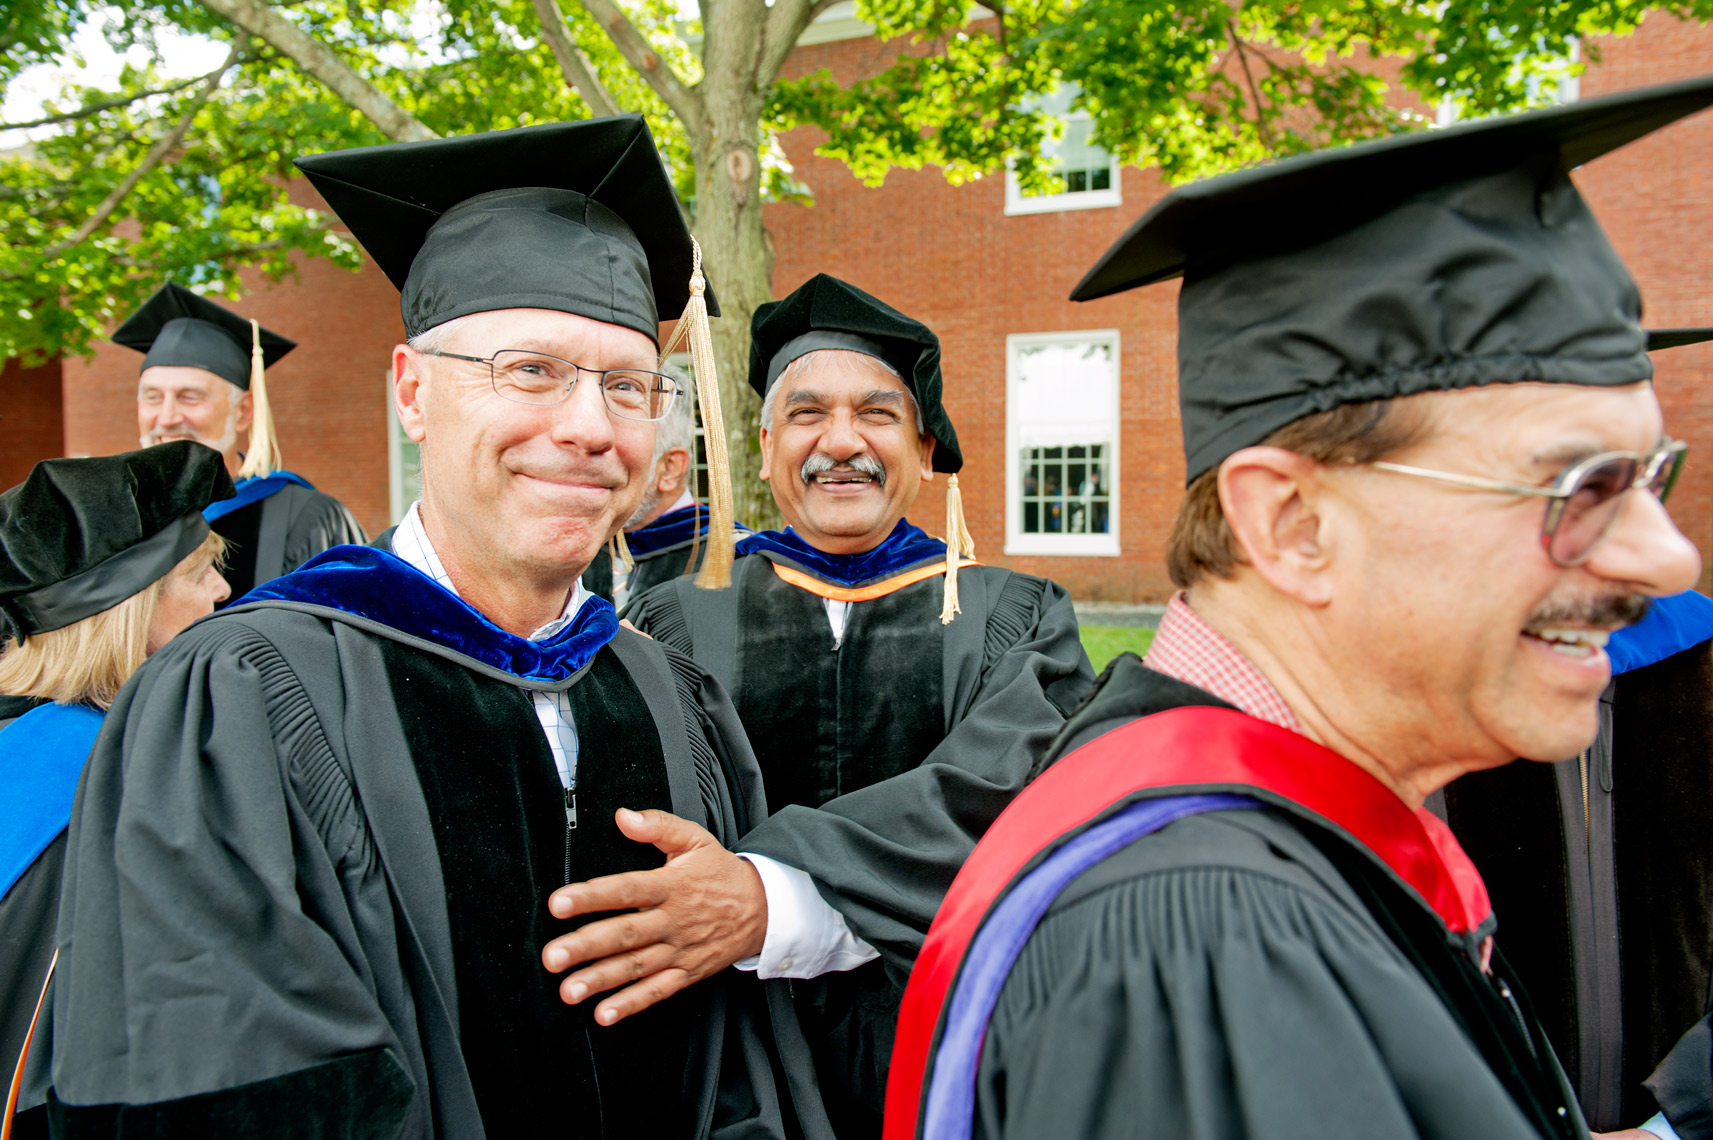 Bentley College Graduation on campus photography Webb Chappell